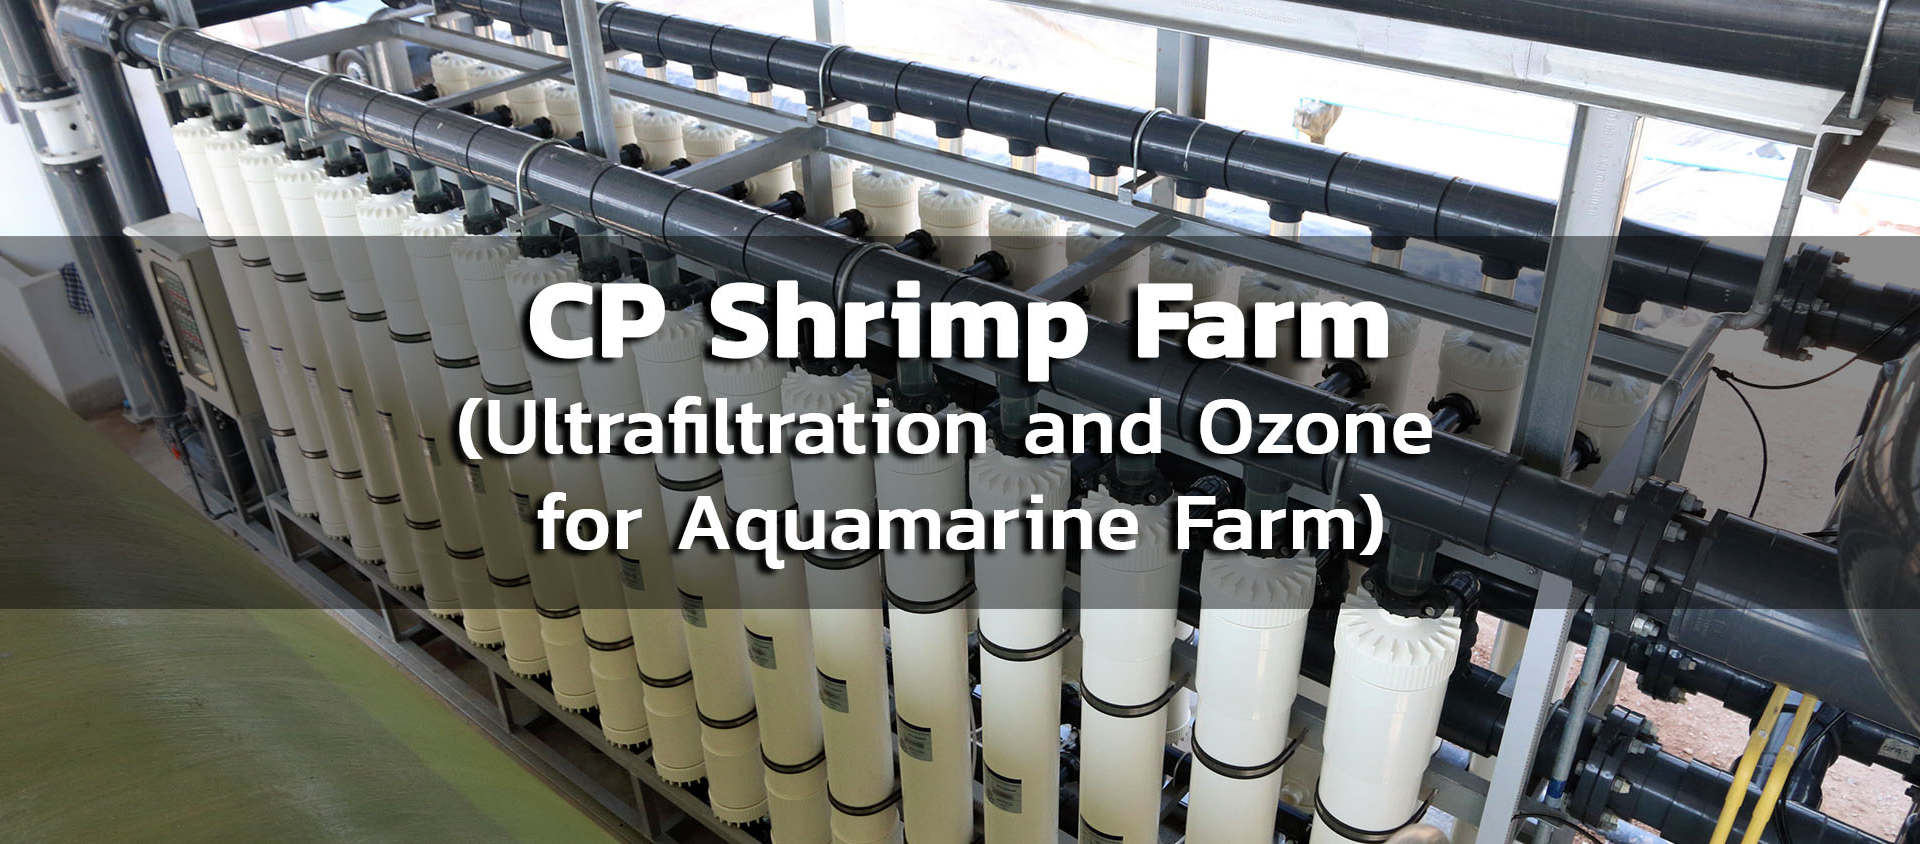 CP Shrimp Farm